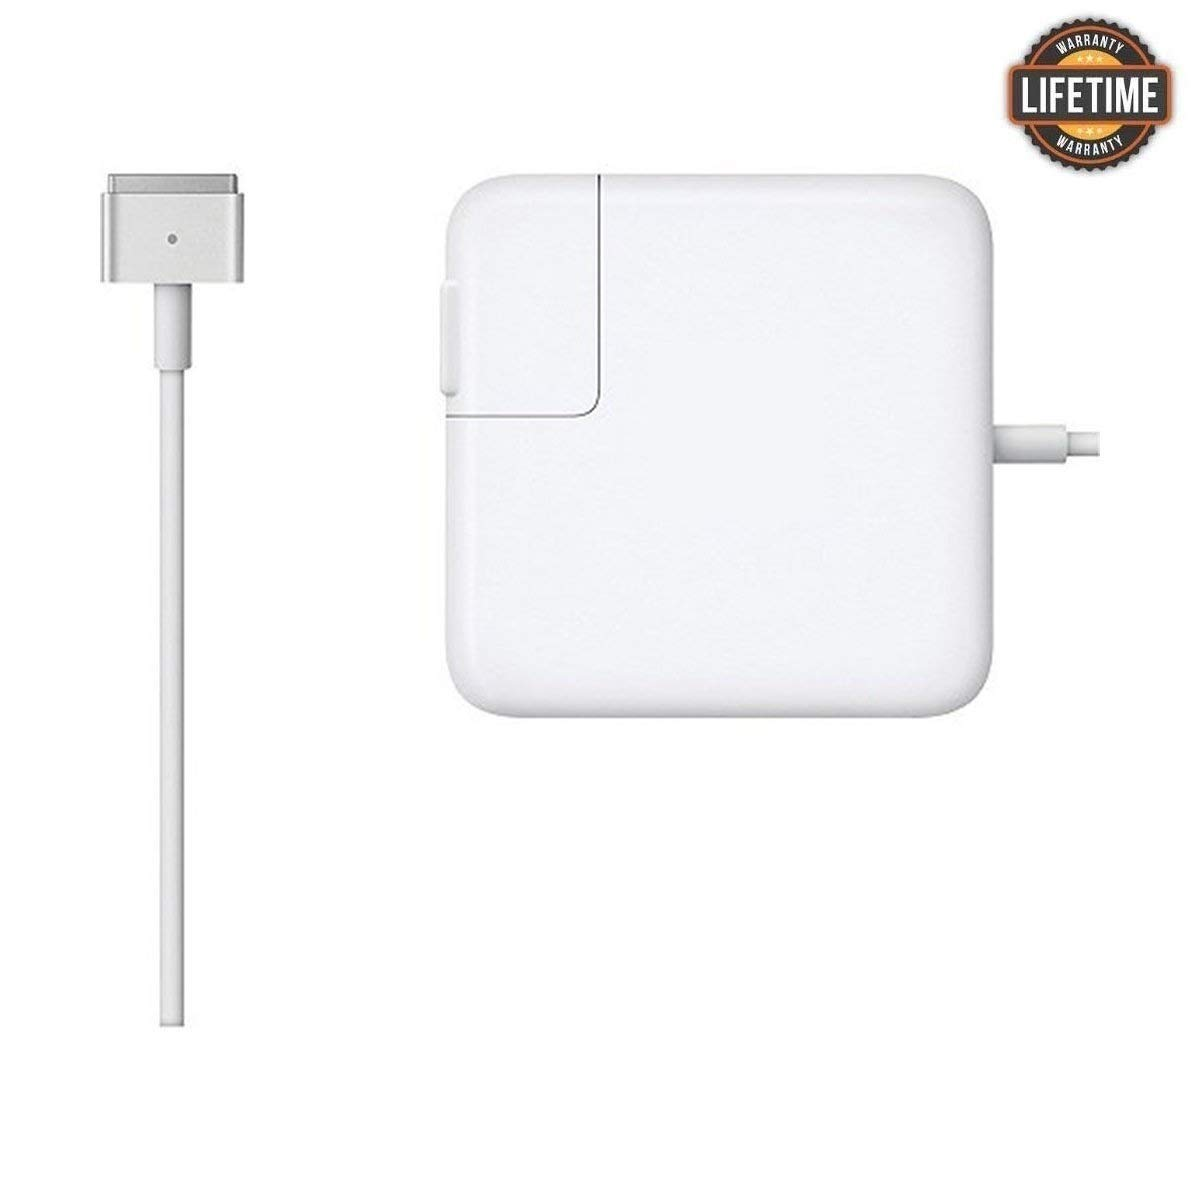 Mac Book Air Charger, Great Replacement 45W Magsafe 2 Magnetic T-Tip Power Adapter Charger for Mac Book Air 11-inch and 13-inch (45T)